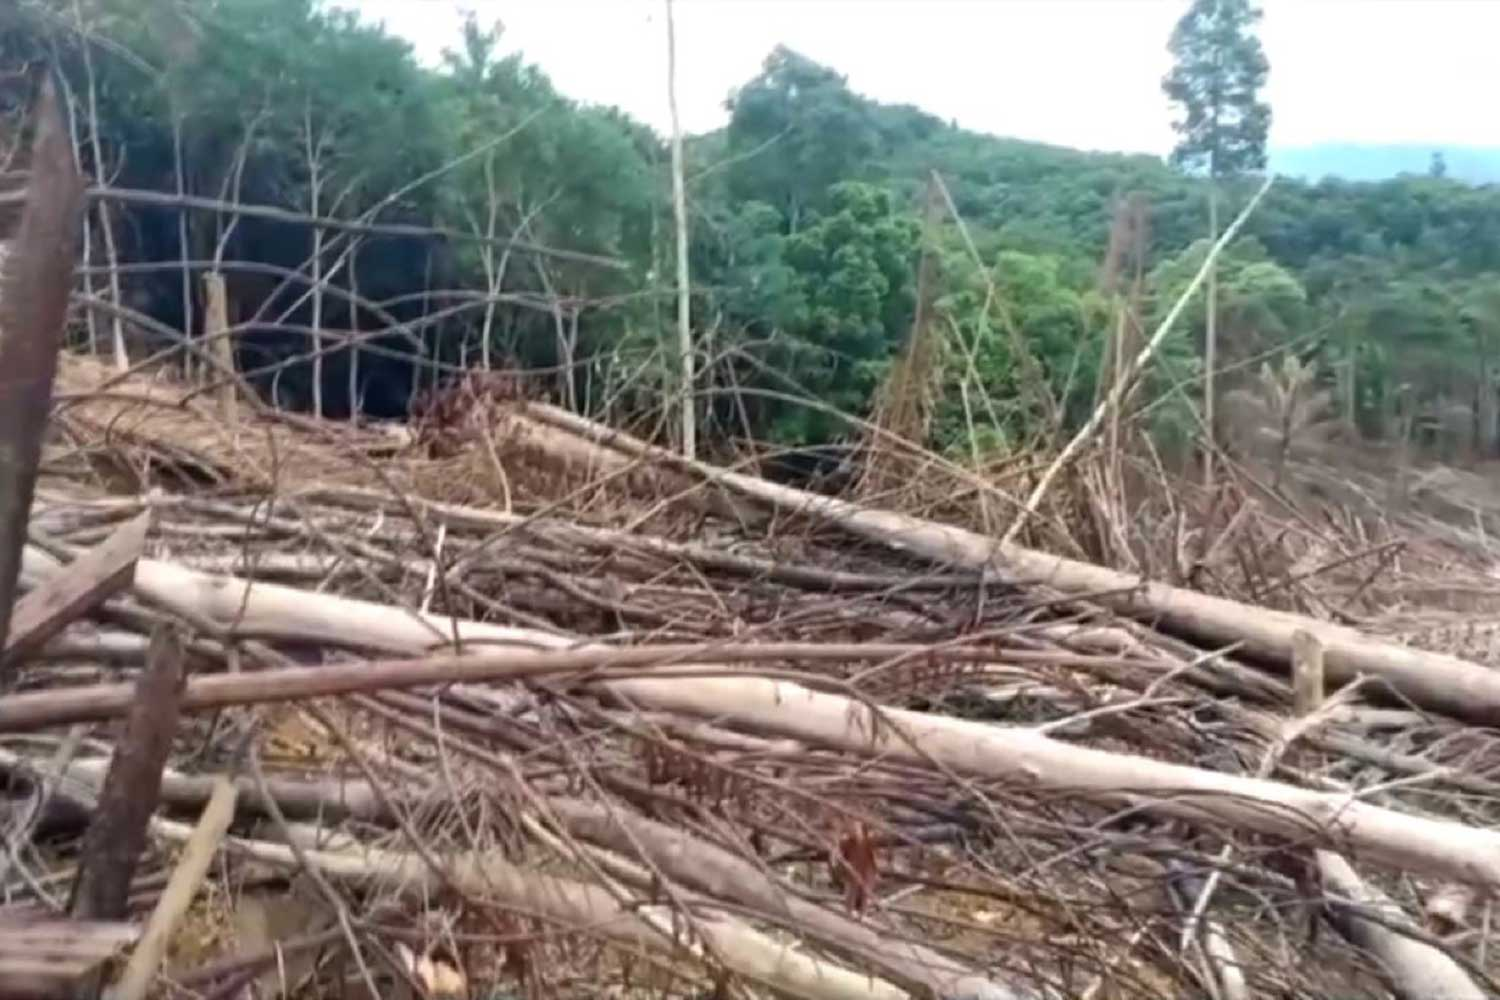 Trees felled in an encroached area of forest on Sankalakhiri mountain in Chanae district of Narathiwat province. (Photo: Waeda Harai)